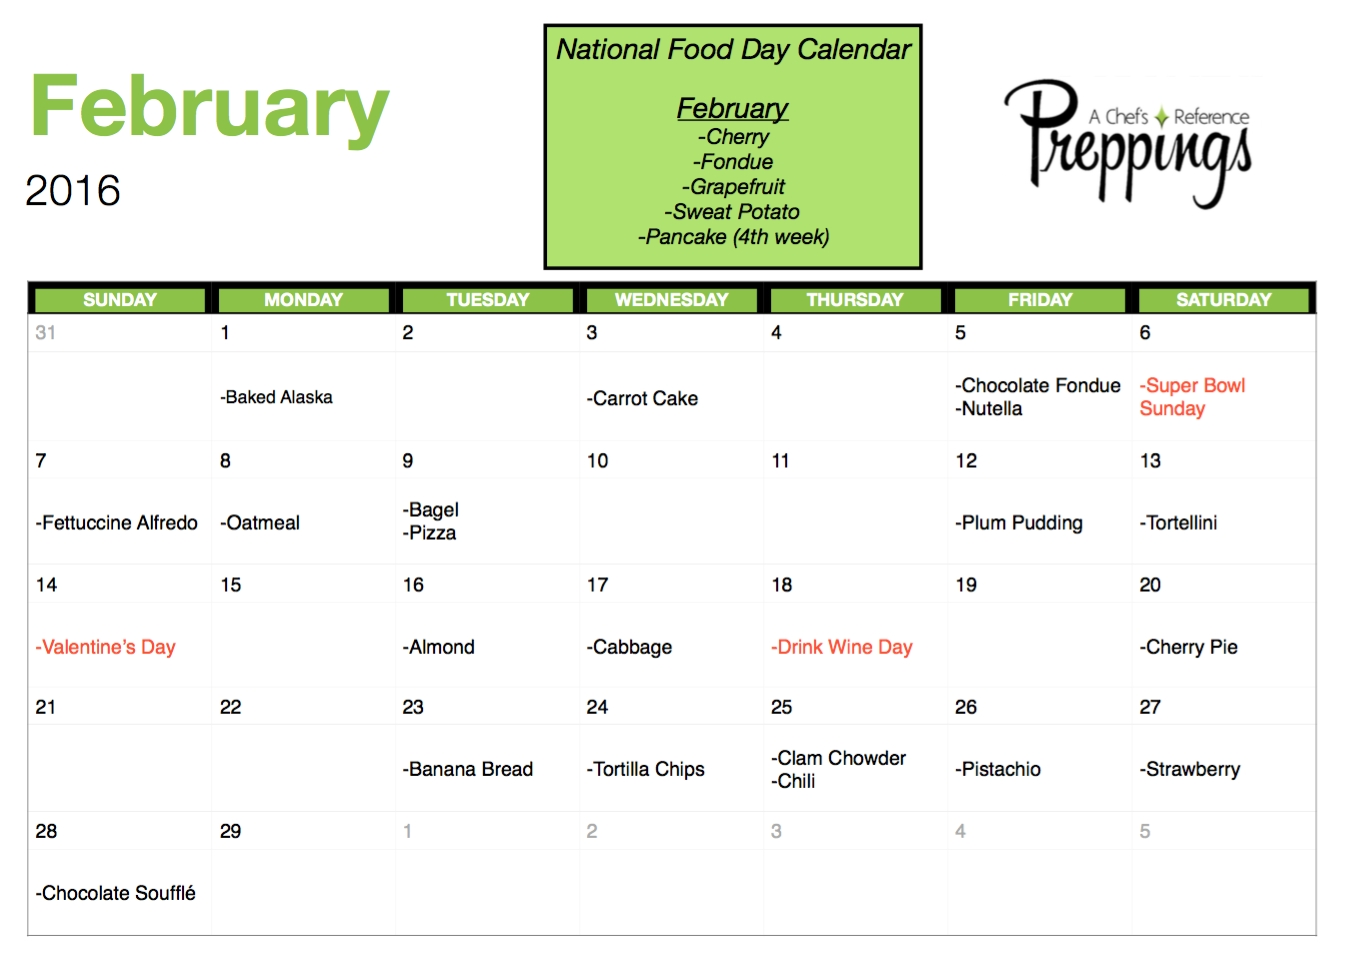 National Food Days Archives - Preppings with regard to Calender With National Food Days